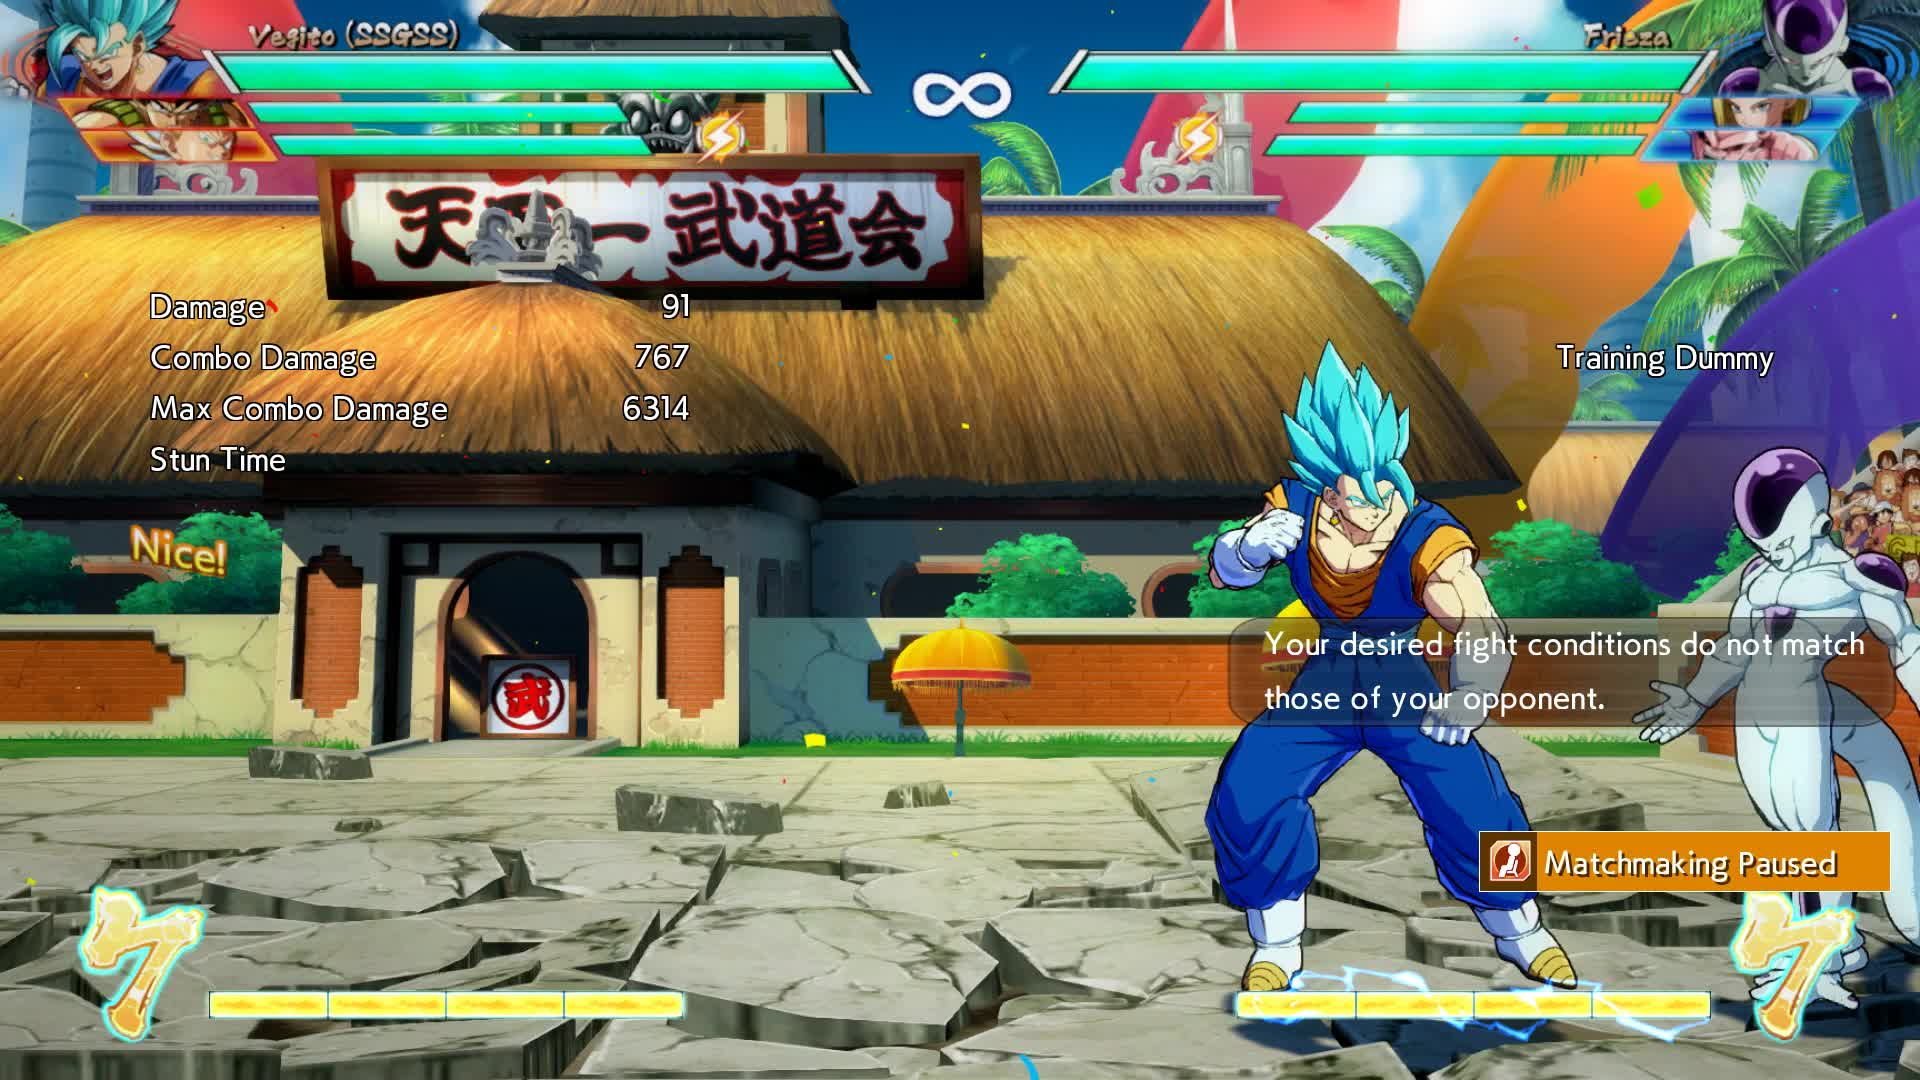 dragon ball fighterz matchmaking paused renaissance speed dating